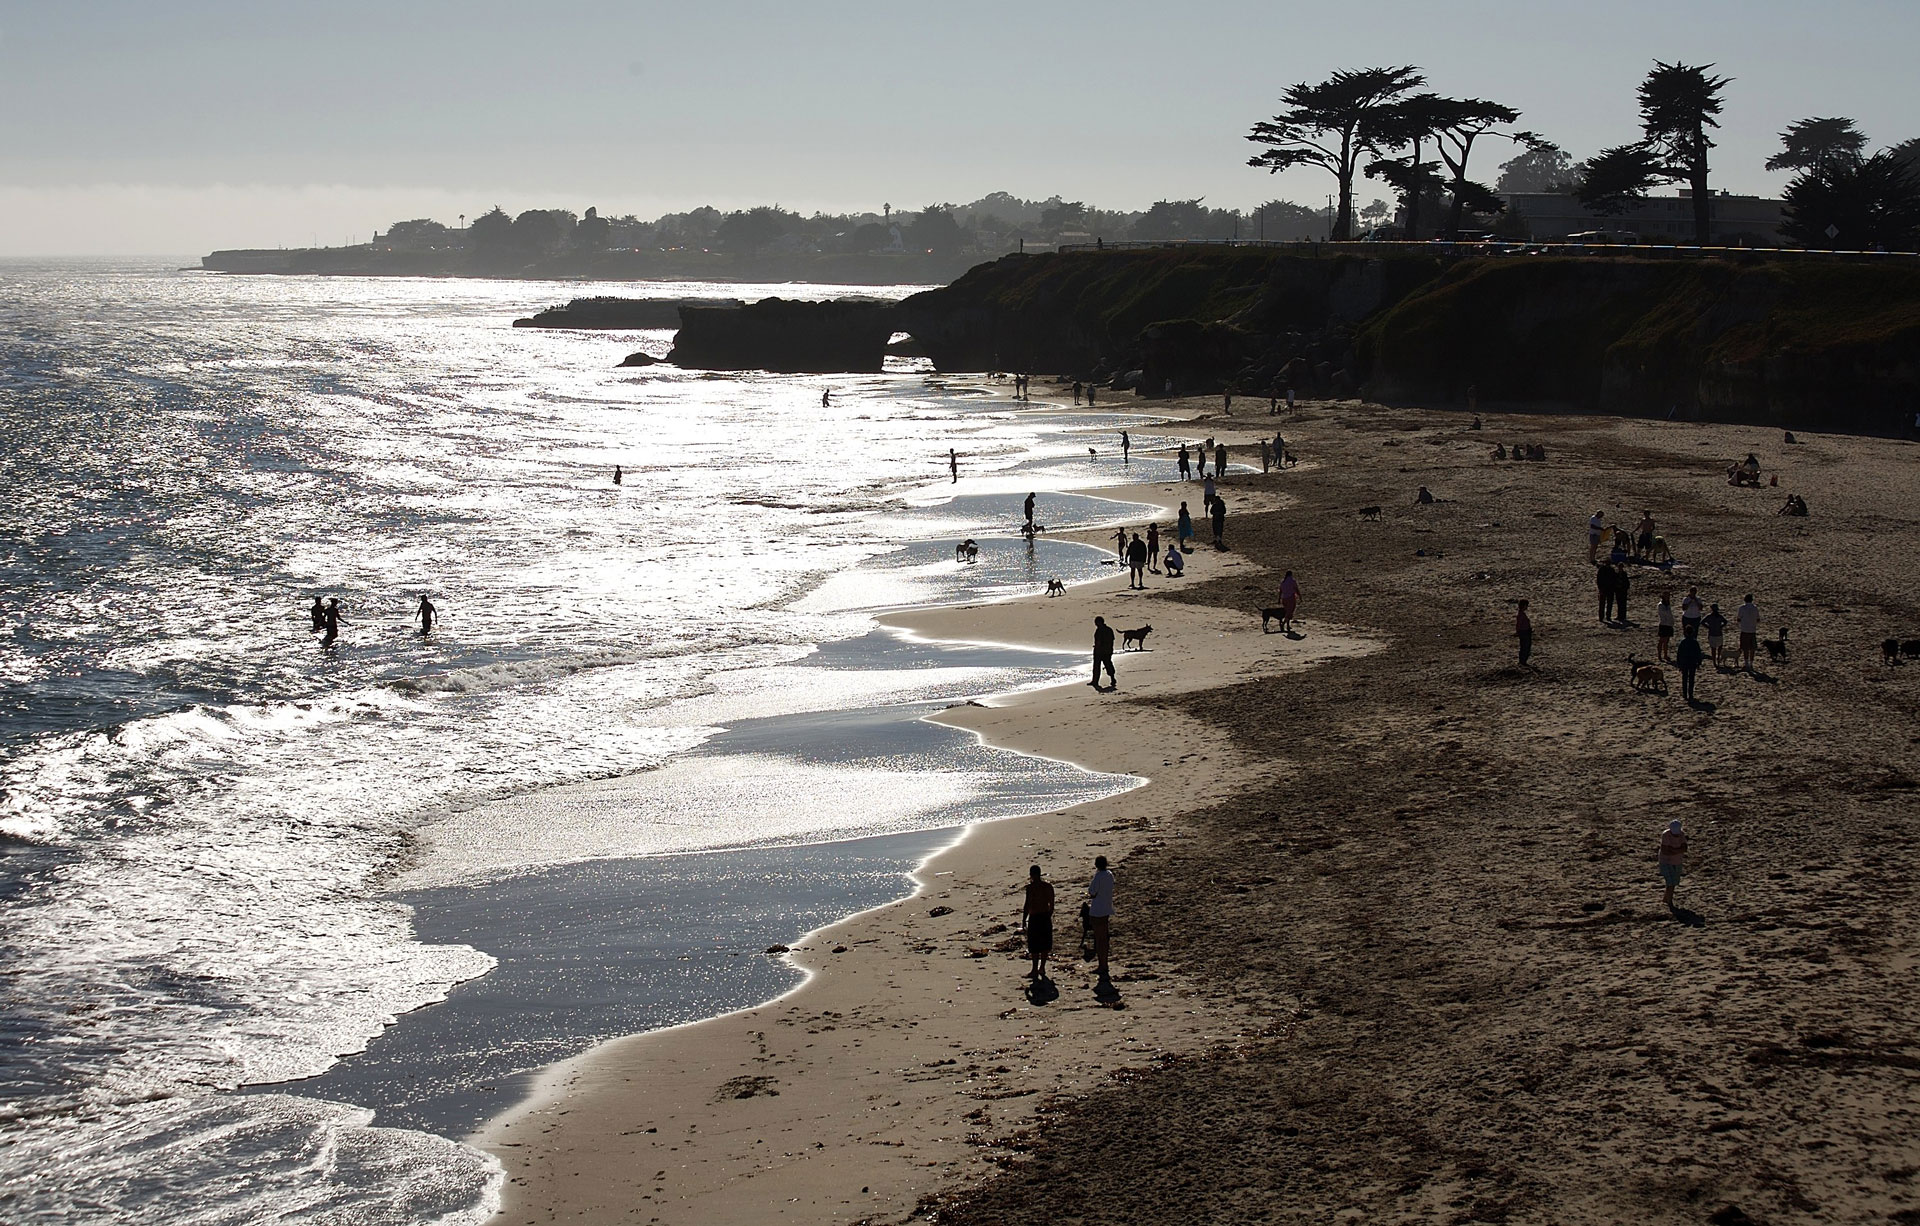 Visitors enjoy the beach below West Cliff Drive in Santa Cruz. Santa Cruz County has the second-highest poverty rate in the state, after Los Angeles.